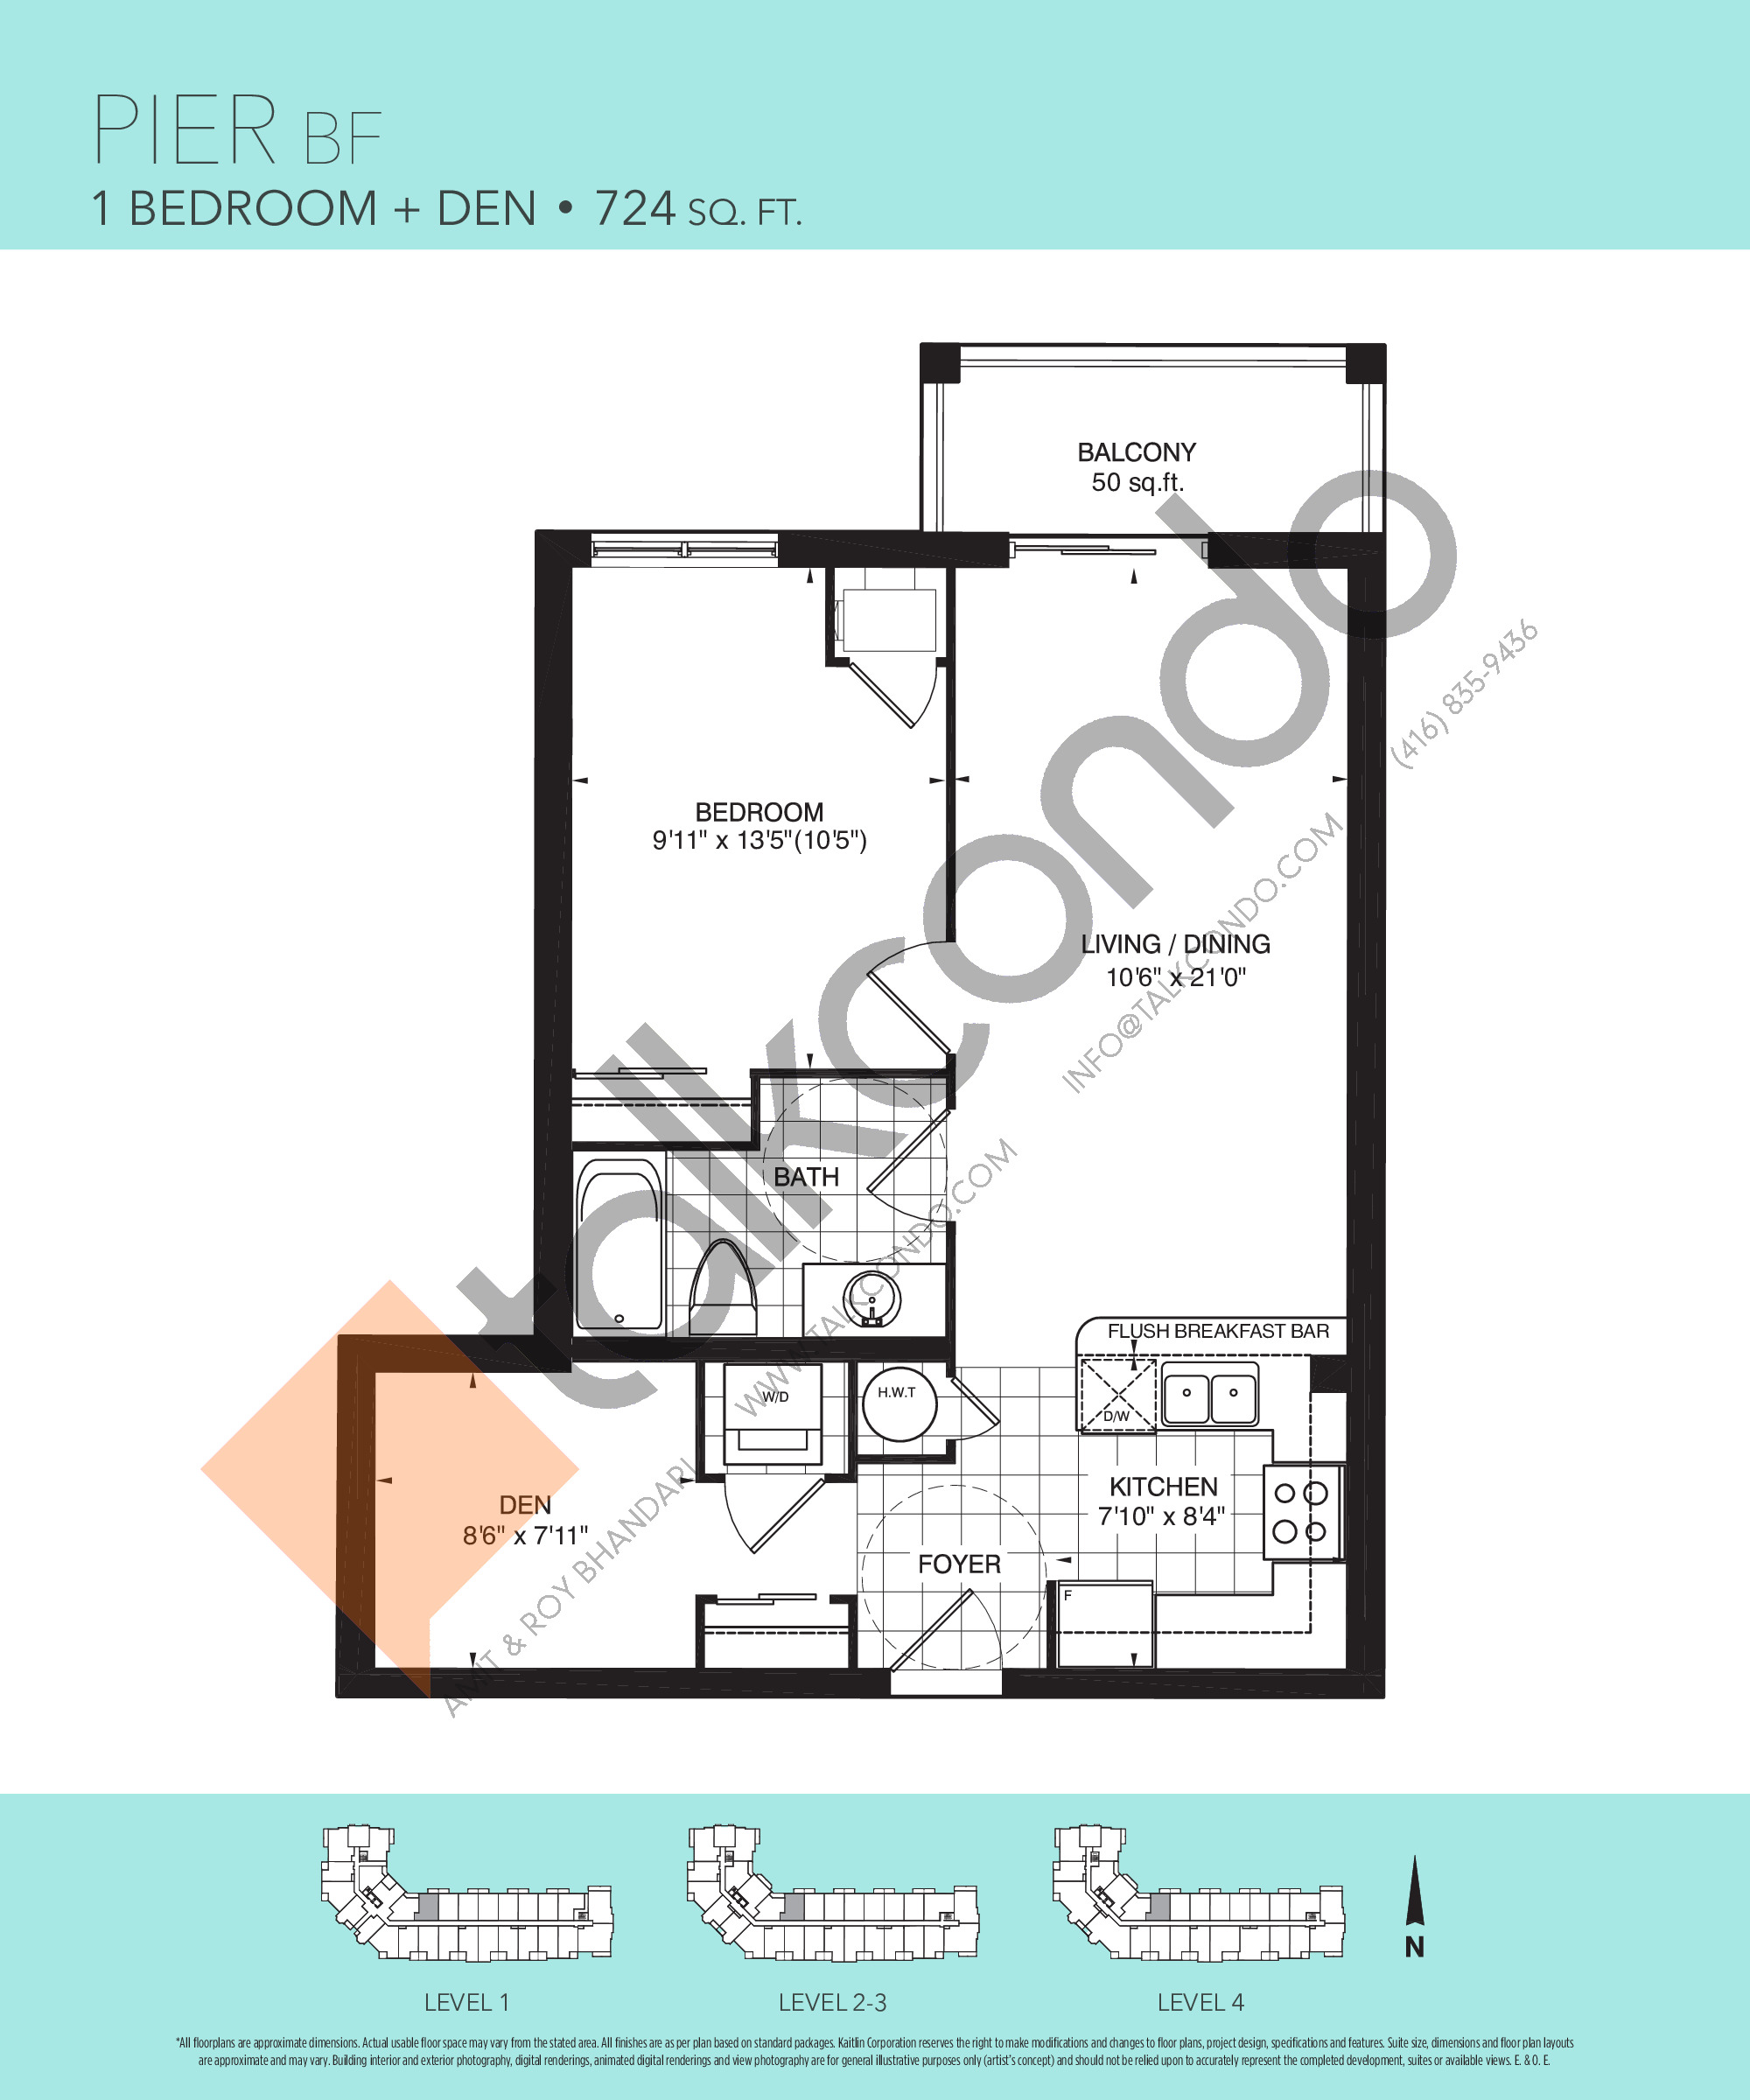 Pier BF Floor Plan at Harbourview Grand Condos - 724 sq.ft